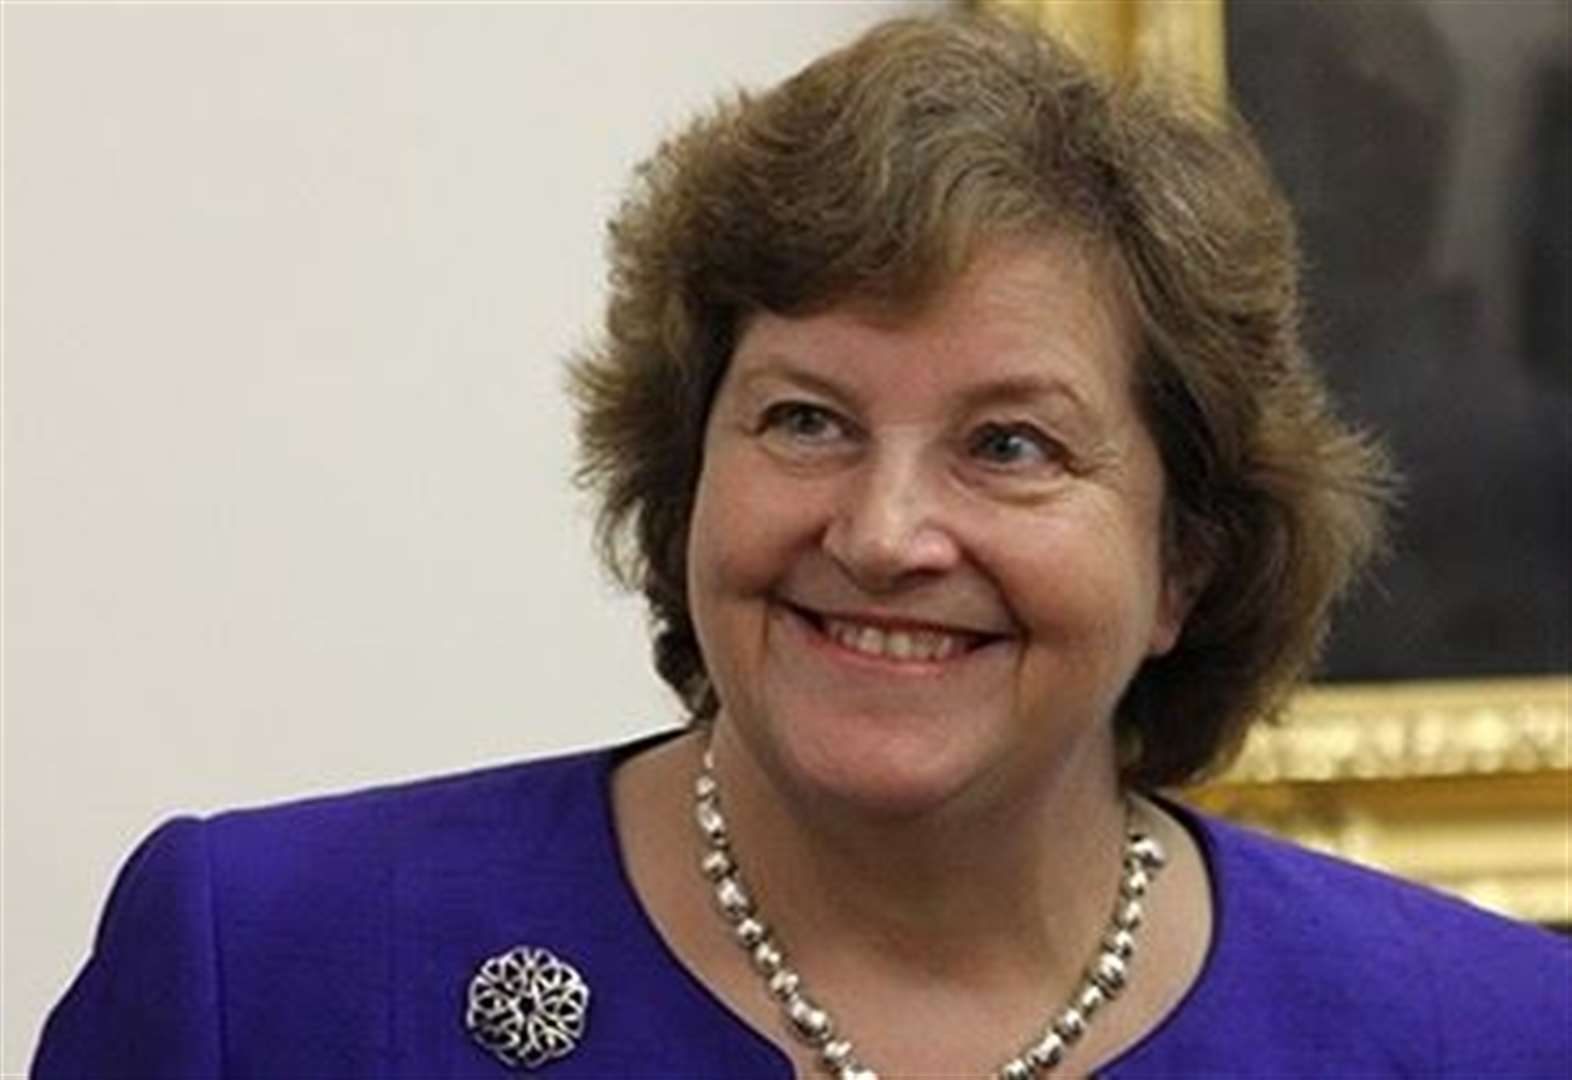 University of Cambridge's Dame Ann Dowling receives Royal Medal for work on reducing aircraft noise